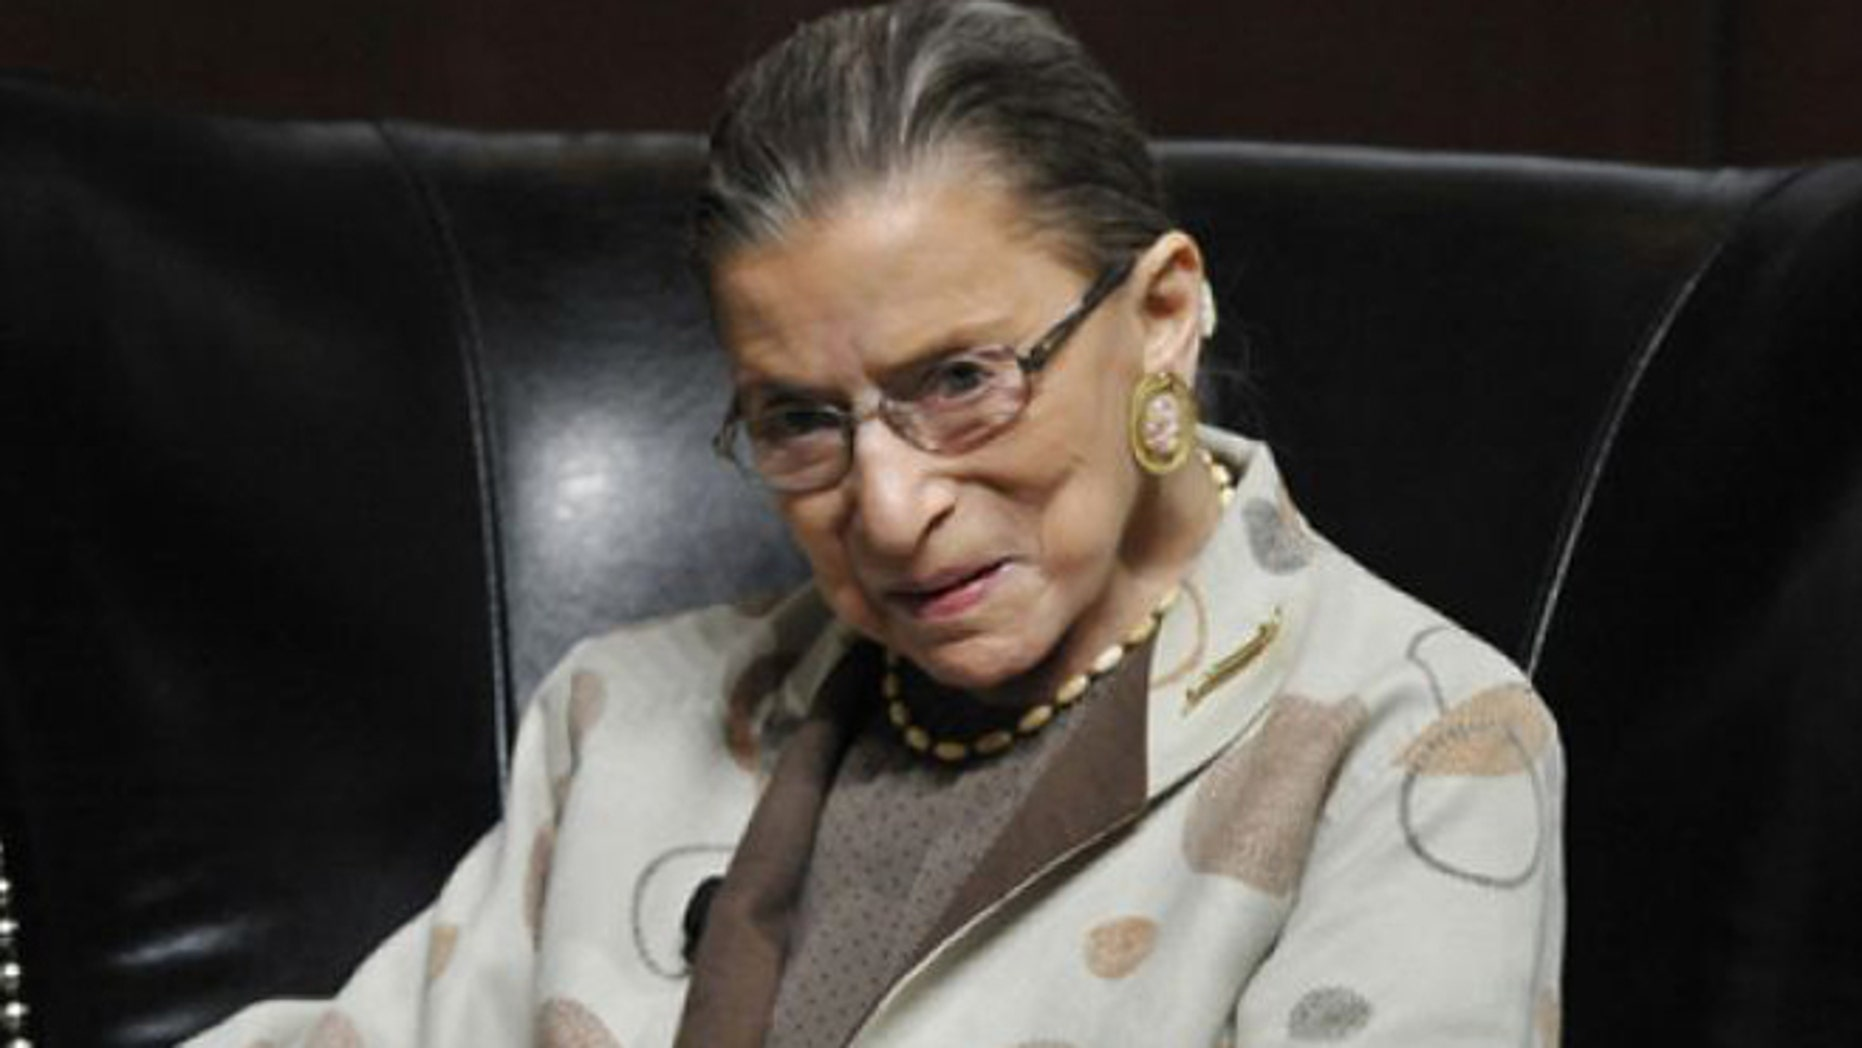 May 11, 2013: U.S. Supreme Court Justice Ruth Bader Ginsburg discusses the Roe vs. Wade case on it's 40th anniversary at The University of Chicago Law School in Chicago